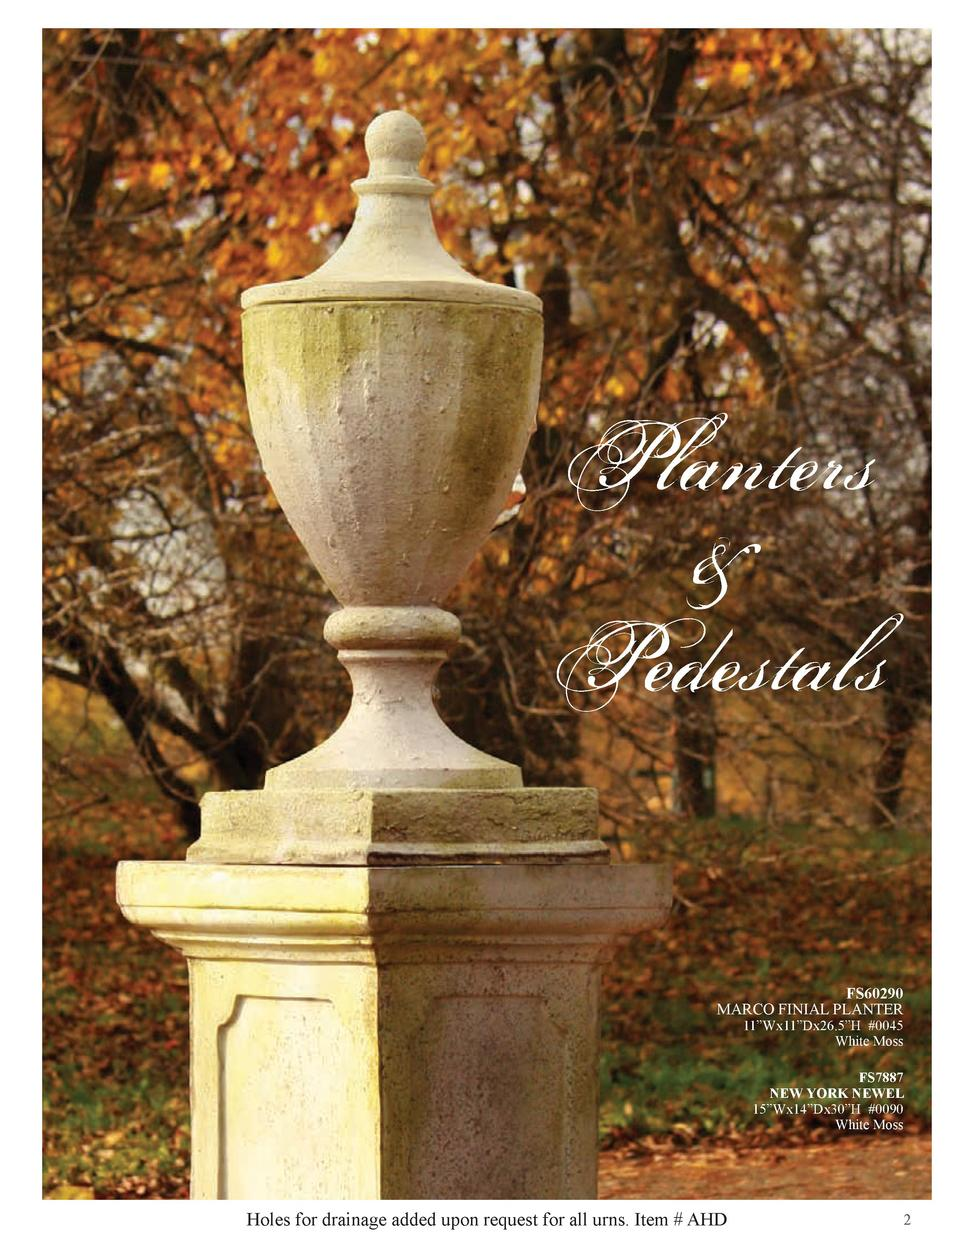 Planters   Pedestals FS60290 MARCO FINIAL PLANTER  11   Wx11   Dx26.5   H  0045 White Moss FS7887 NEW YORK NEWEL 15   Wx14...